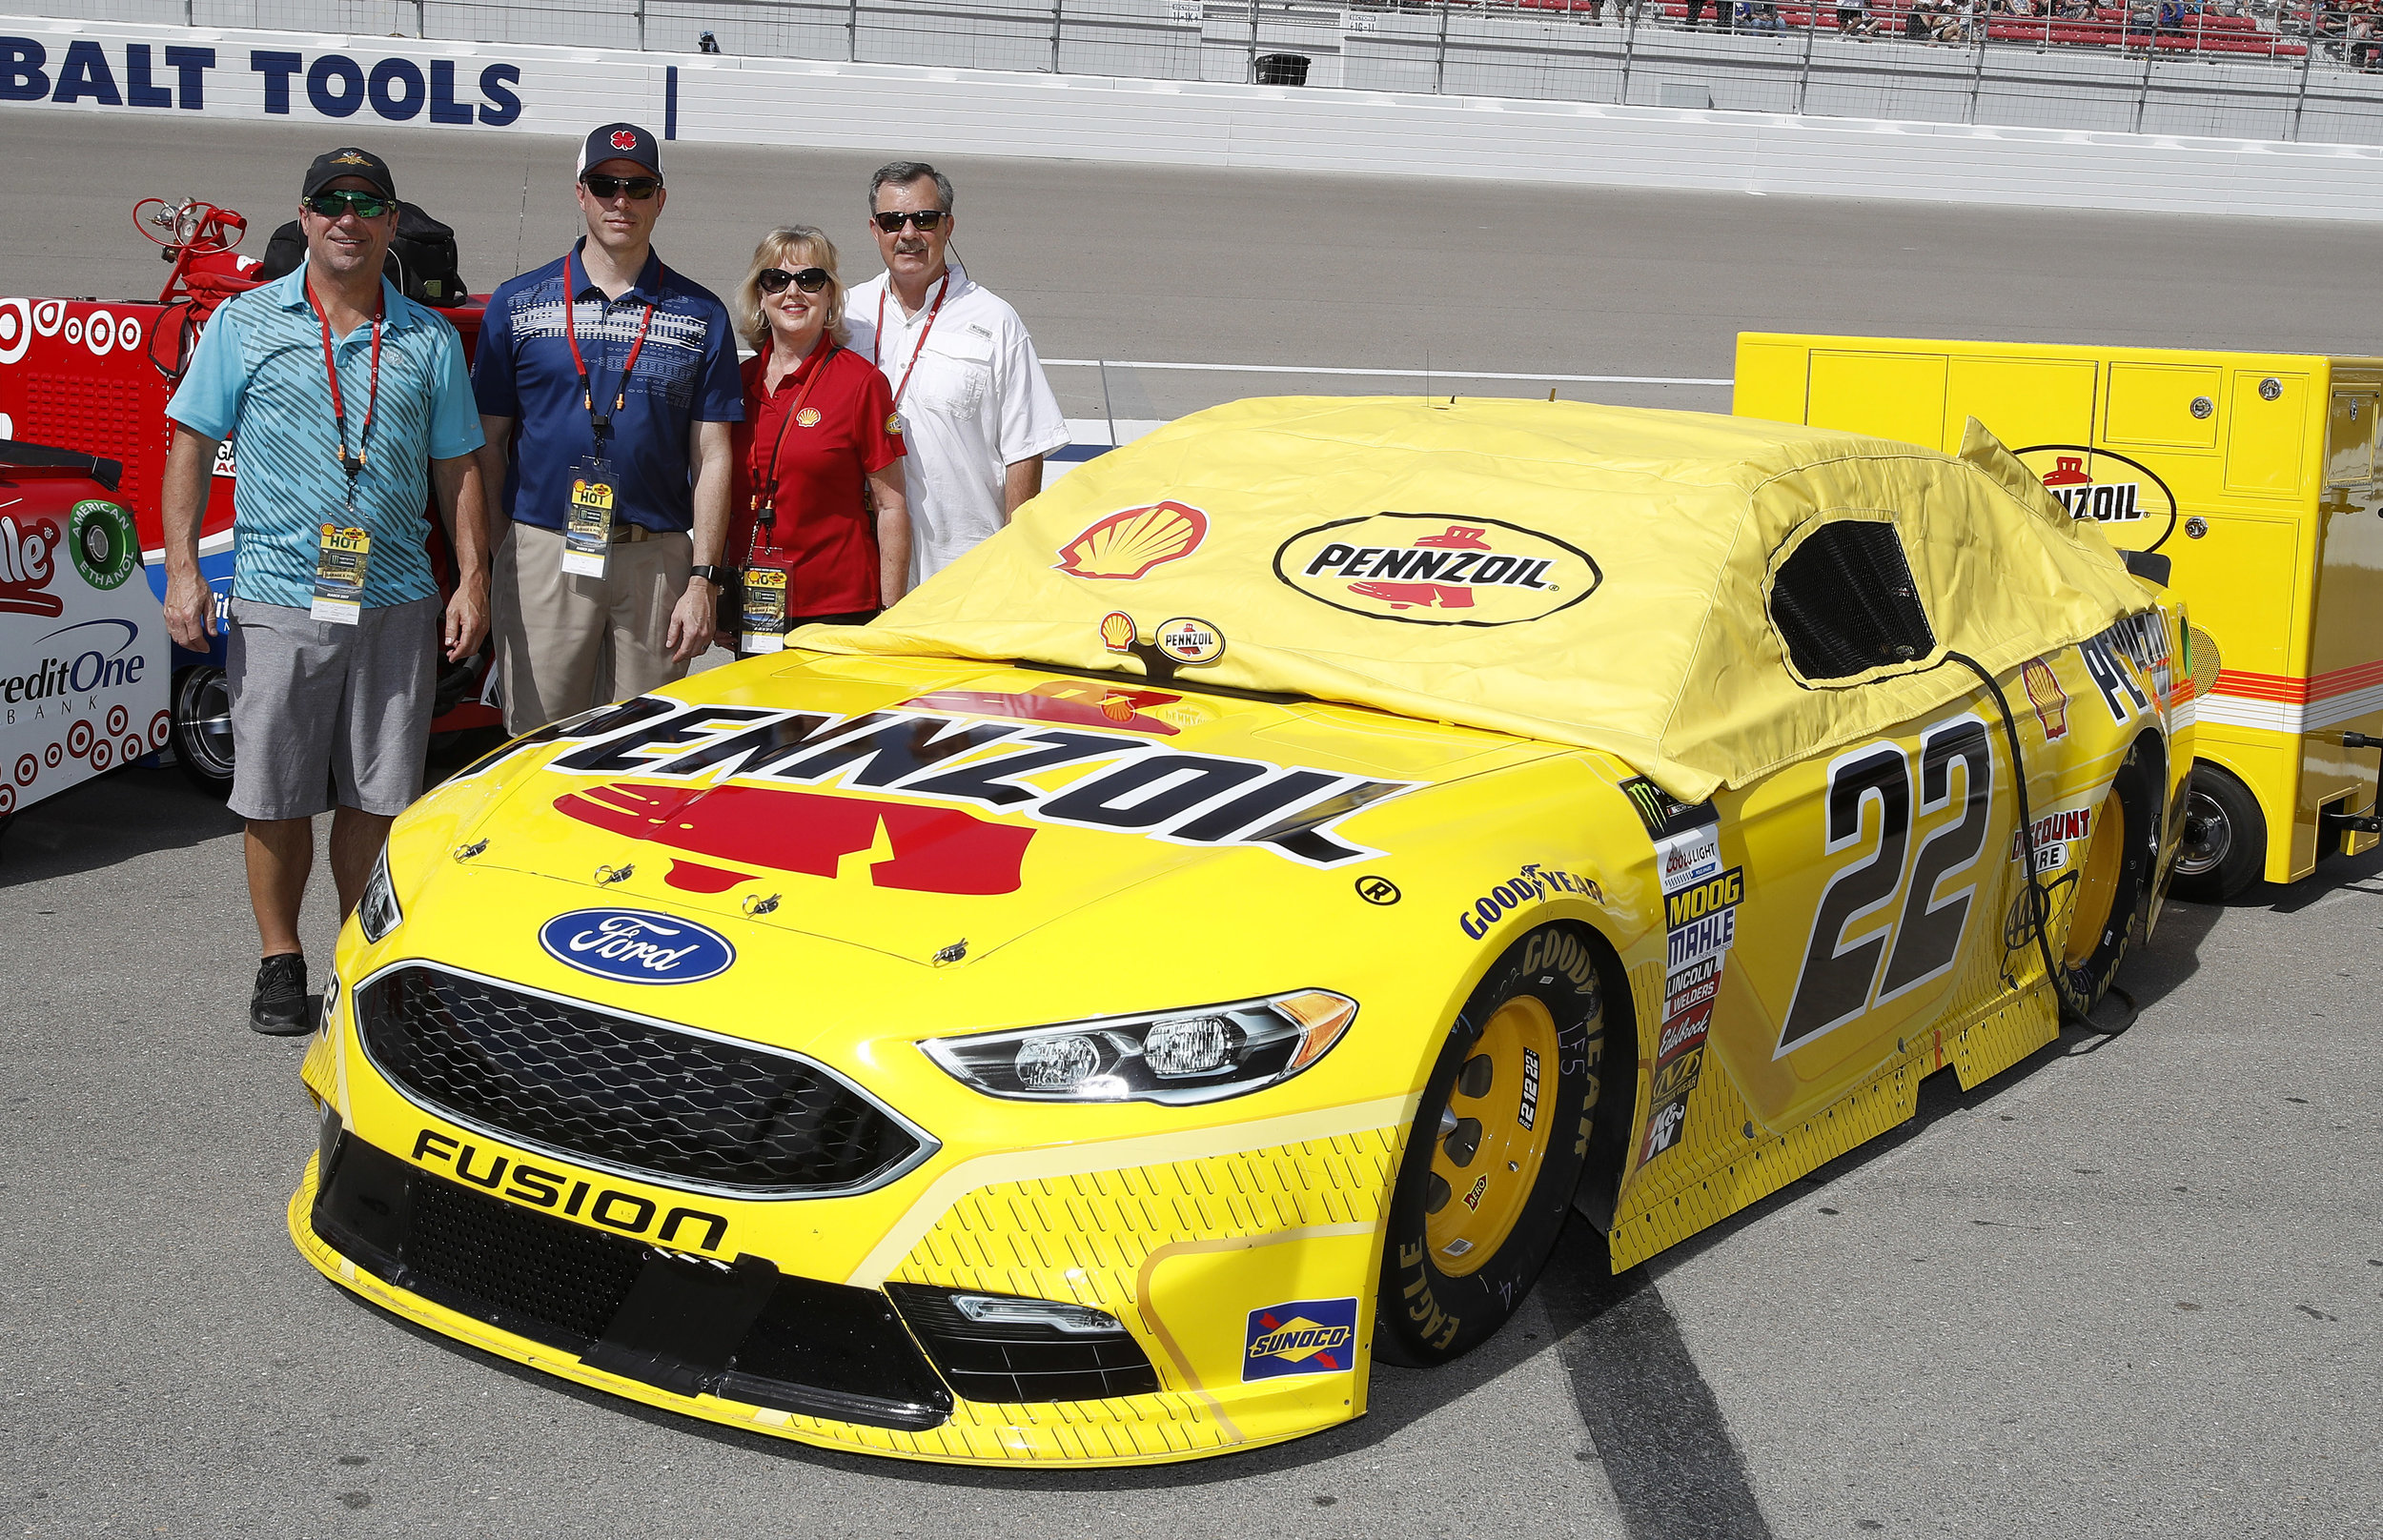 Contest winners from Core-Mark and RacePro enjoy pit road before the race.